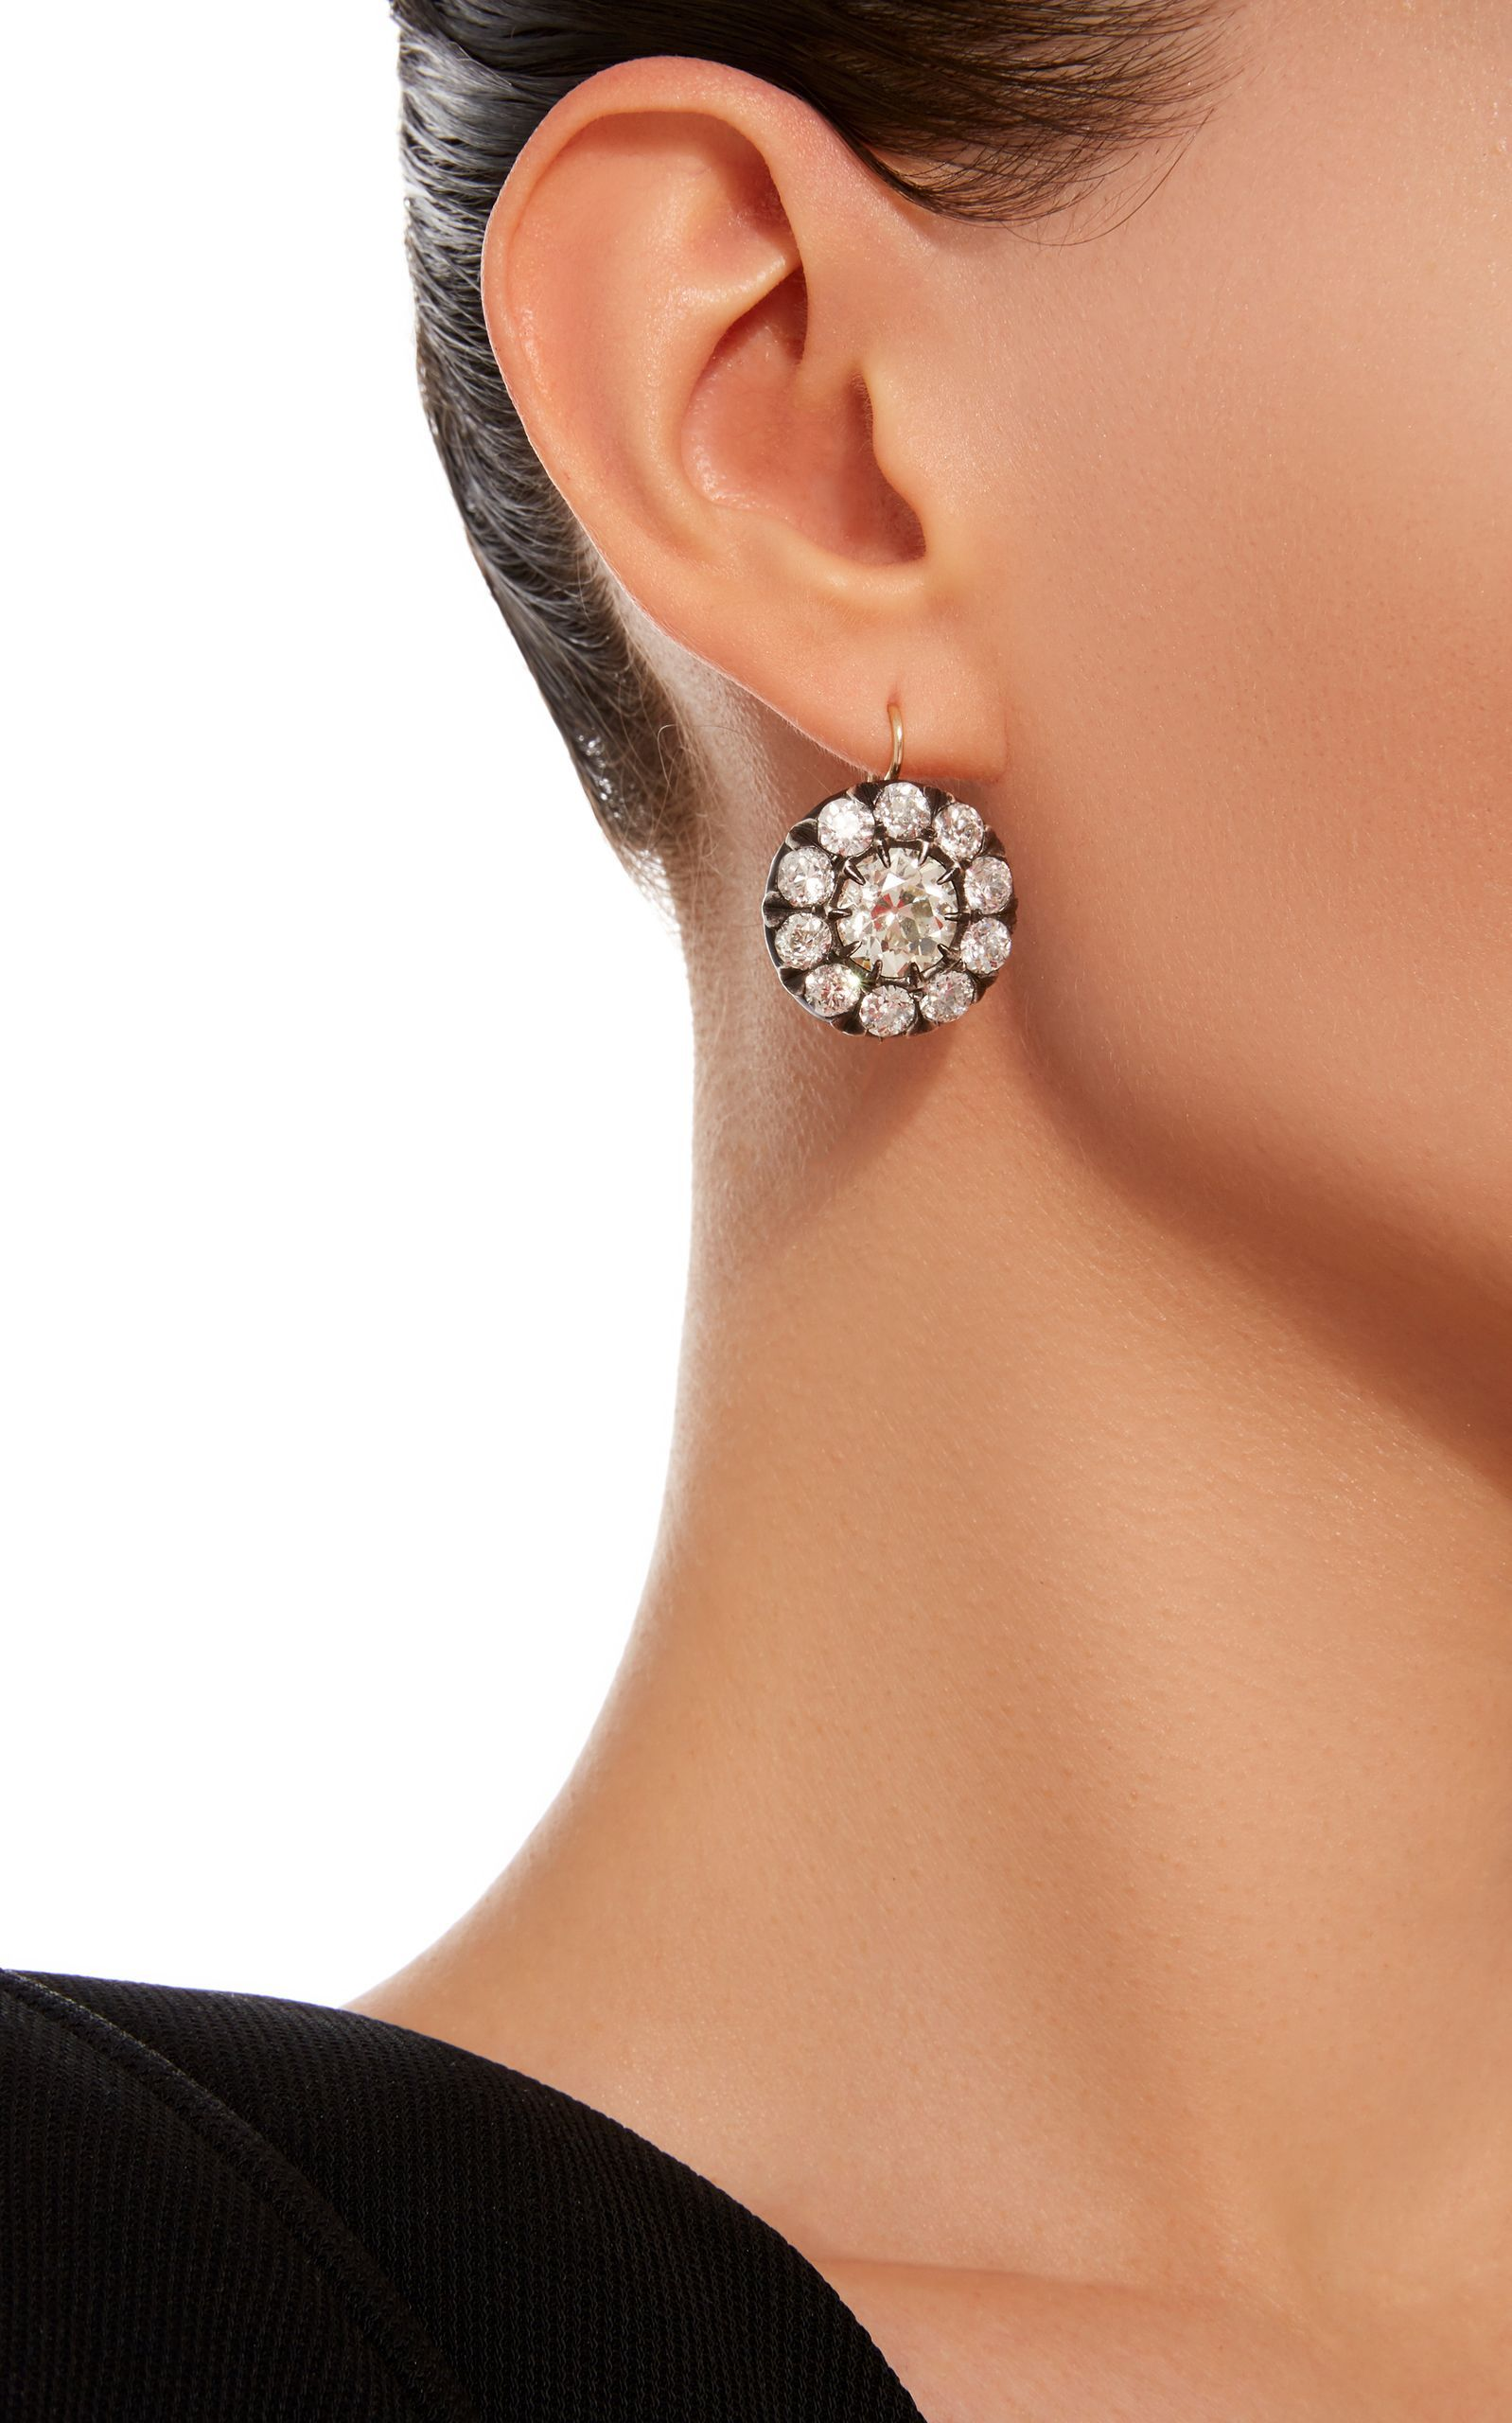 Checkout one of the best collections of Earrings You ll Ever See